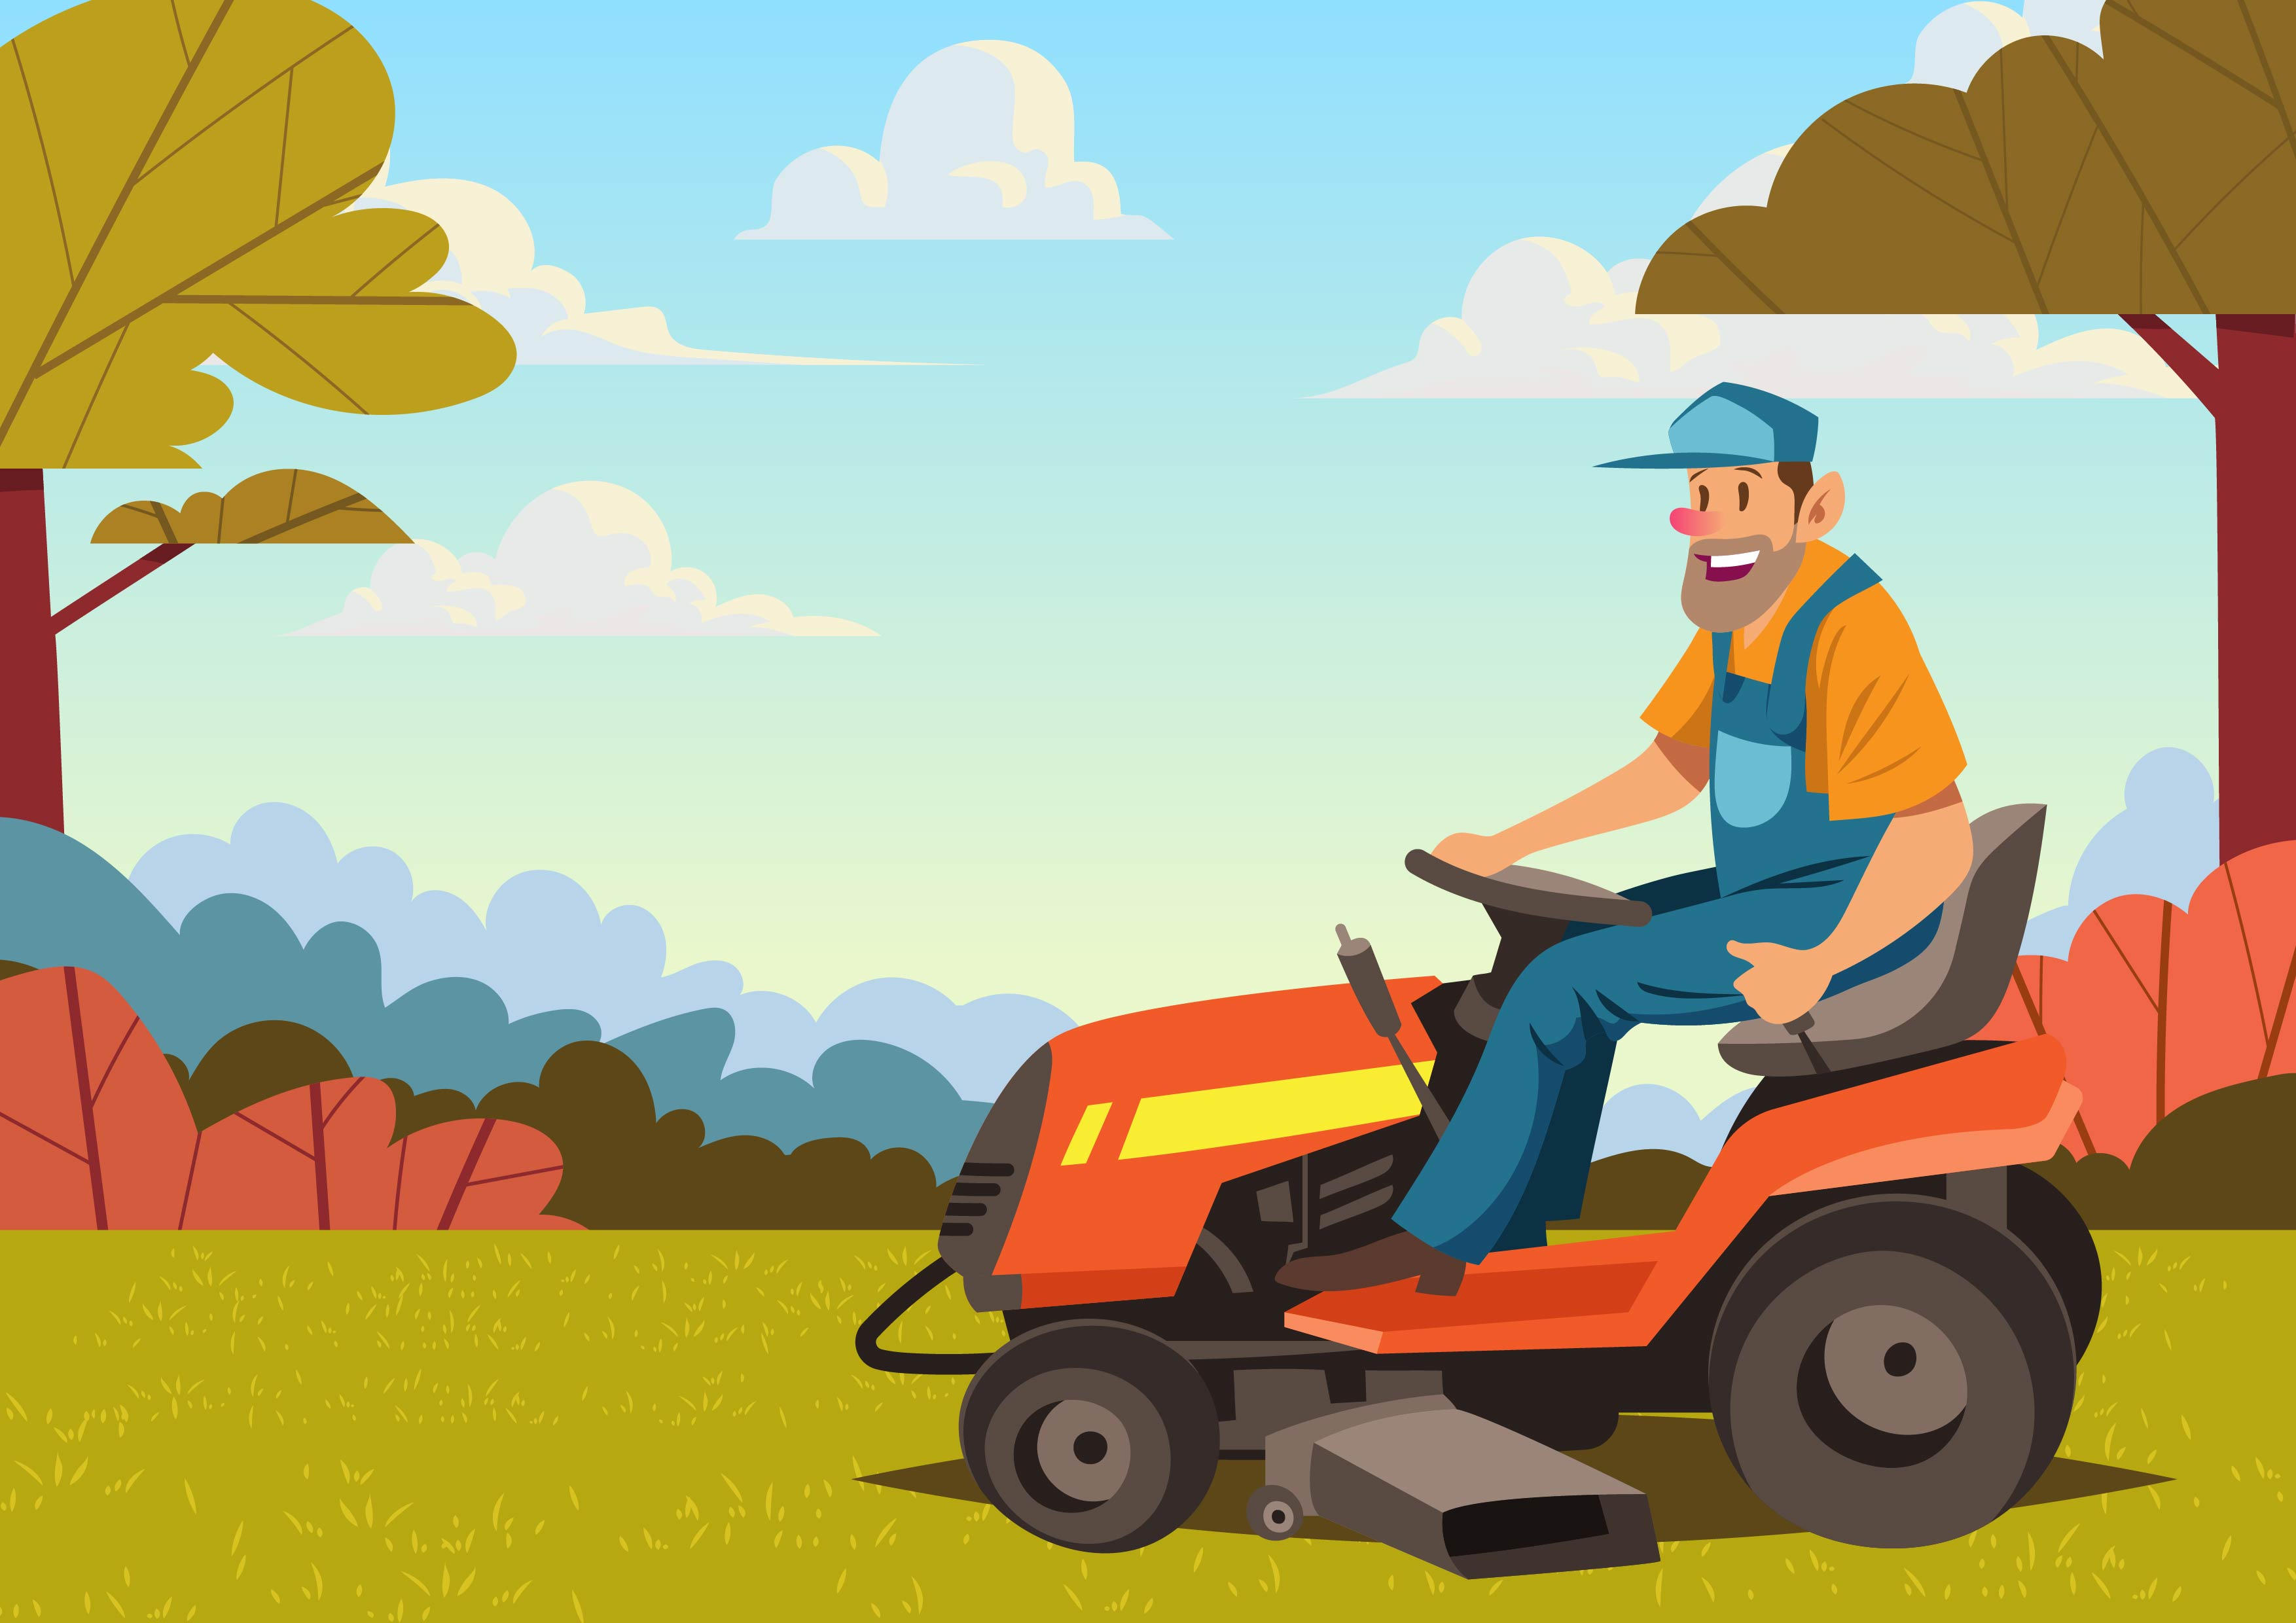 Man Riding Lawn Mower Download Free Vectors Clipart